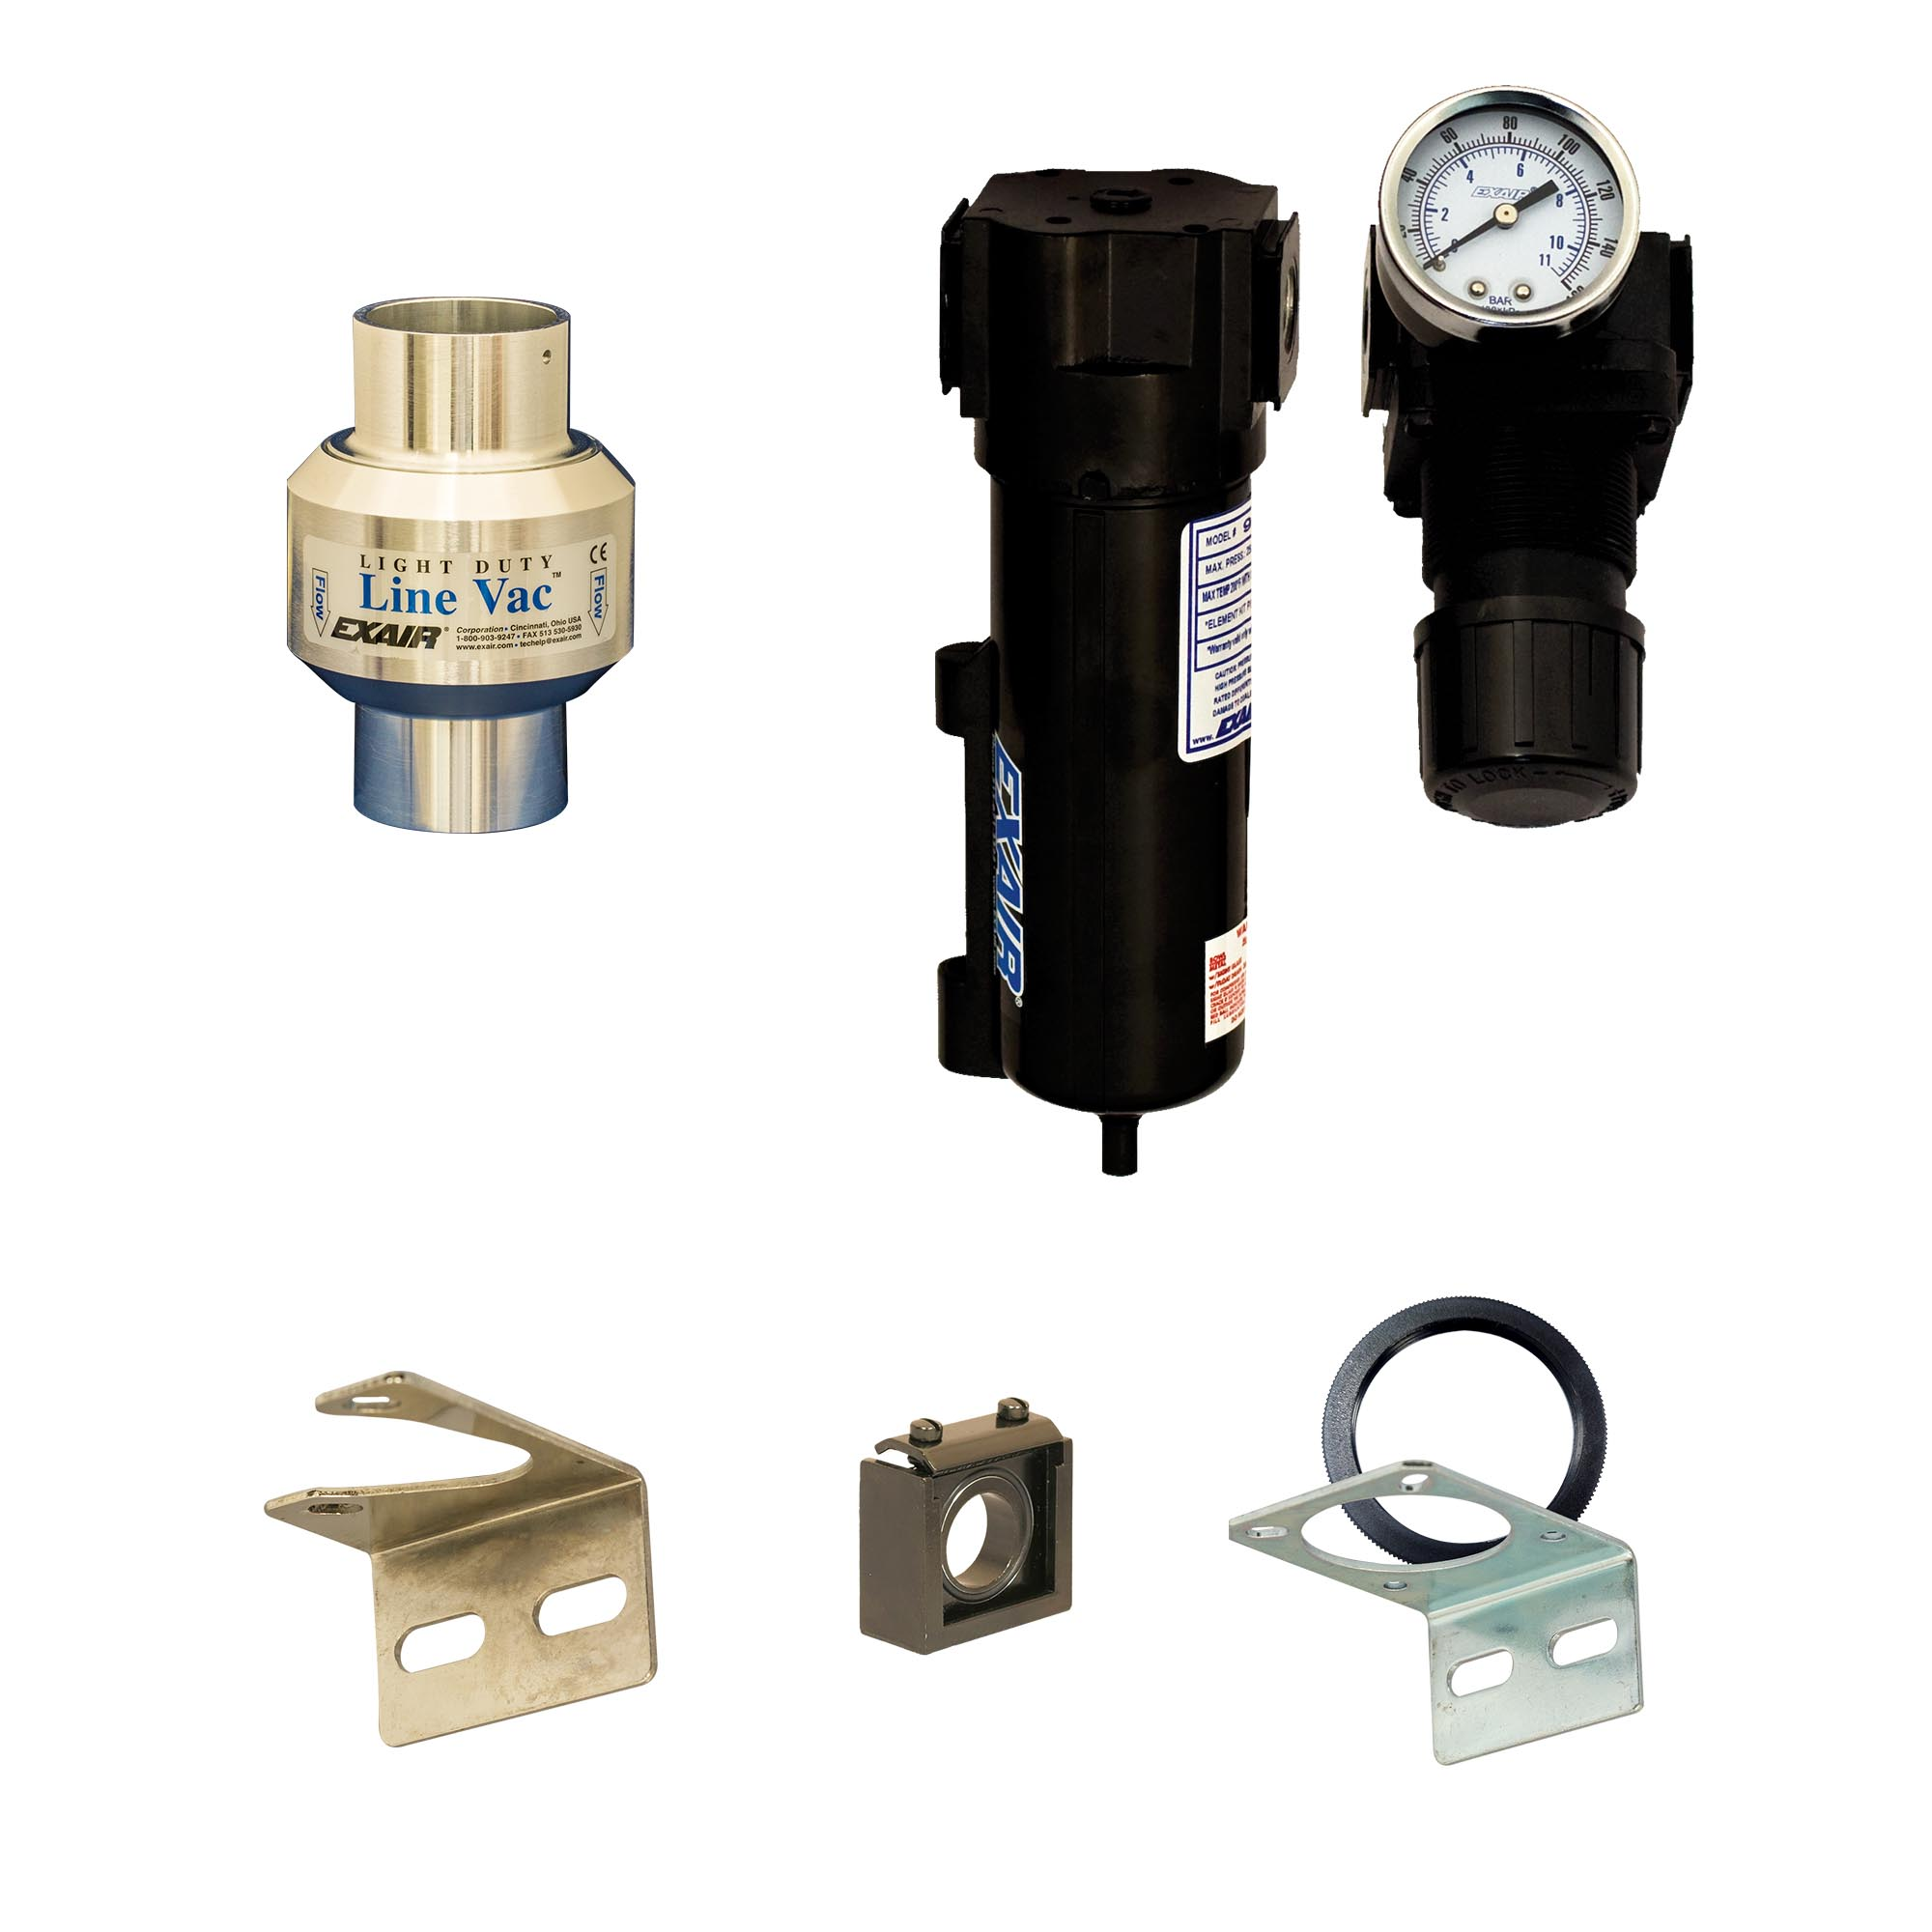 Line Vac Kits include a Line Vac, mounting bracket, filter separator and pressure regulator (with coupler).